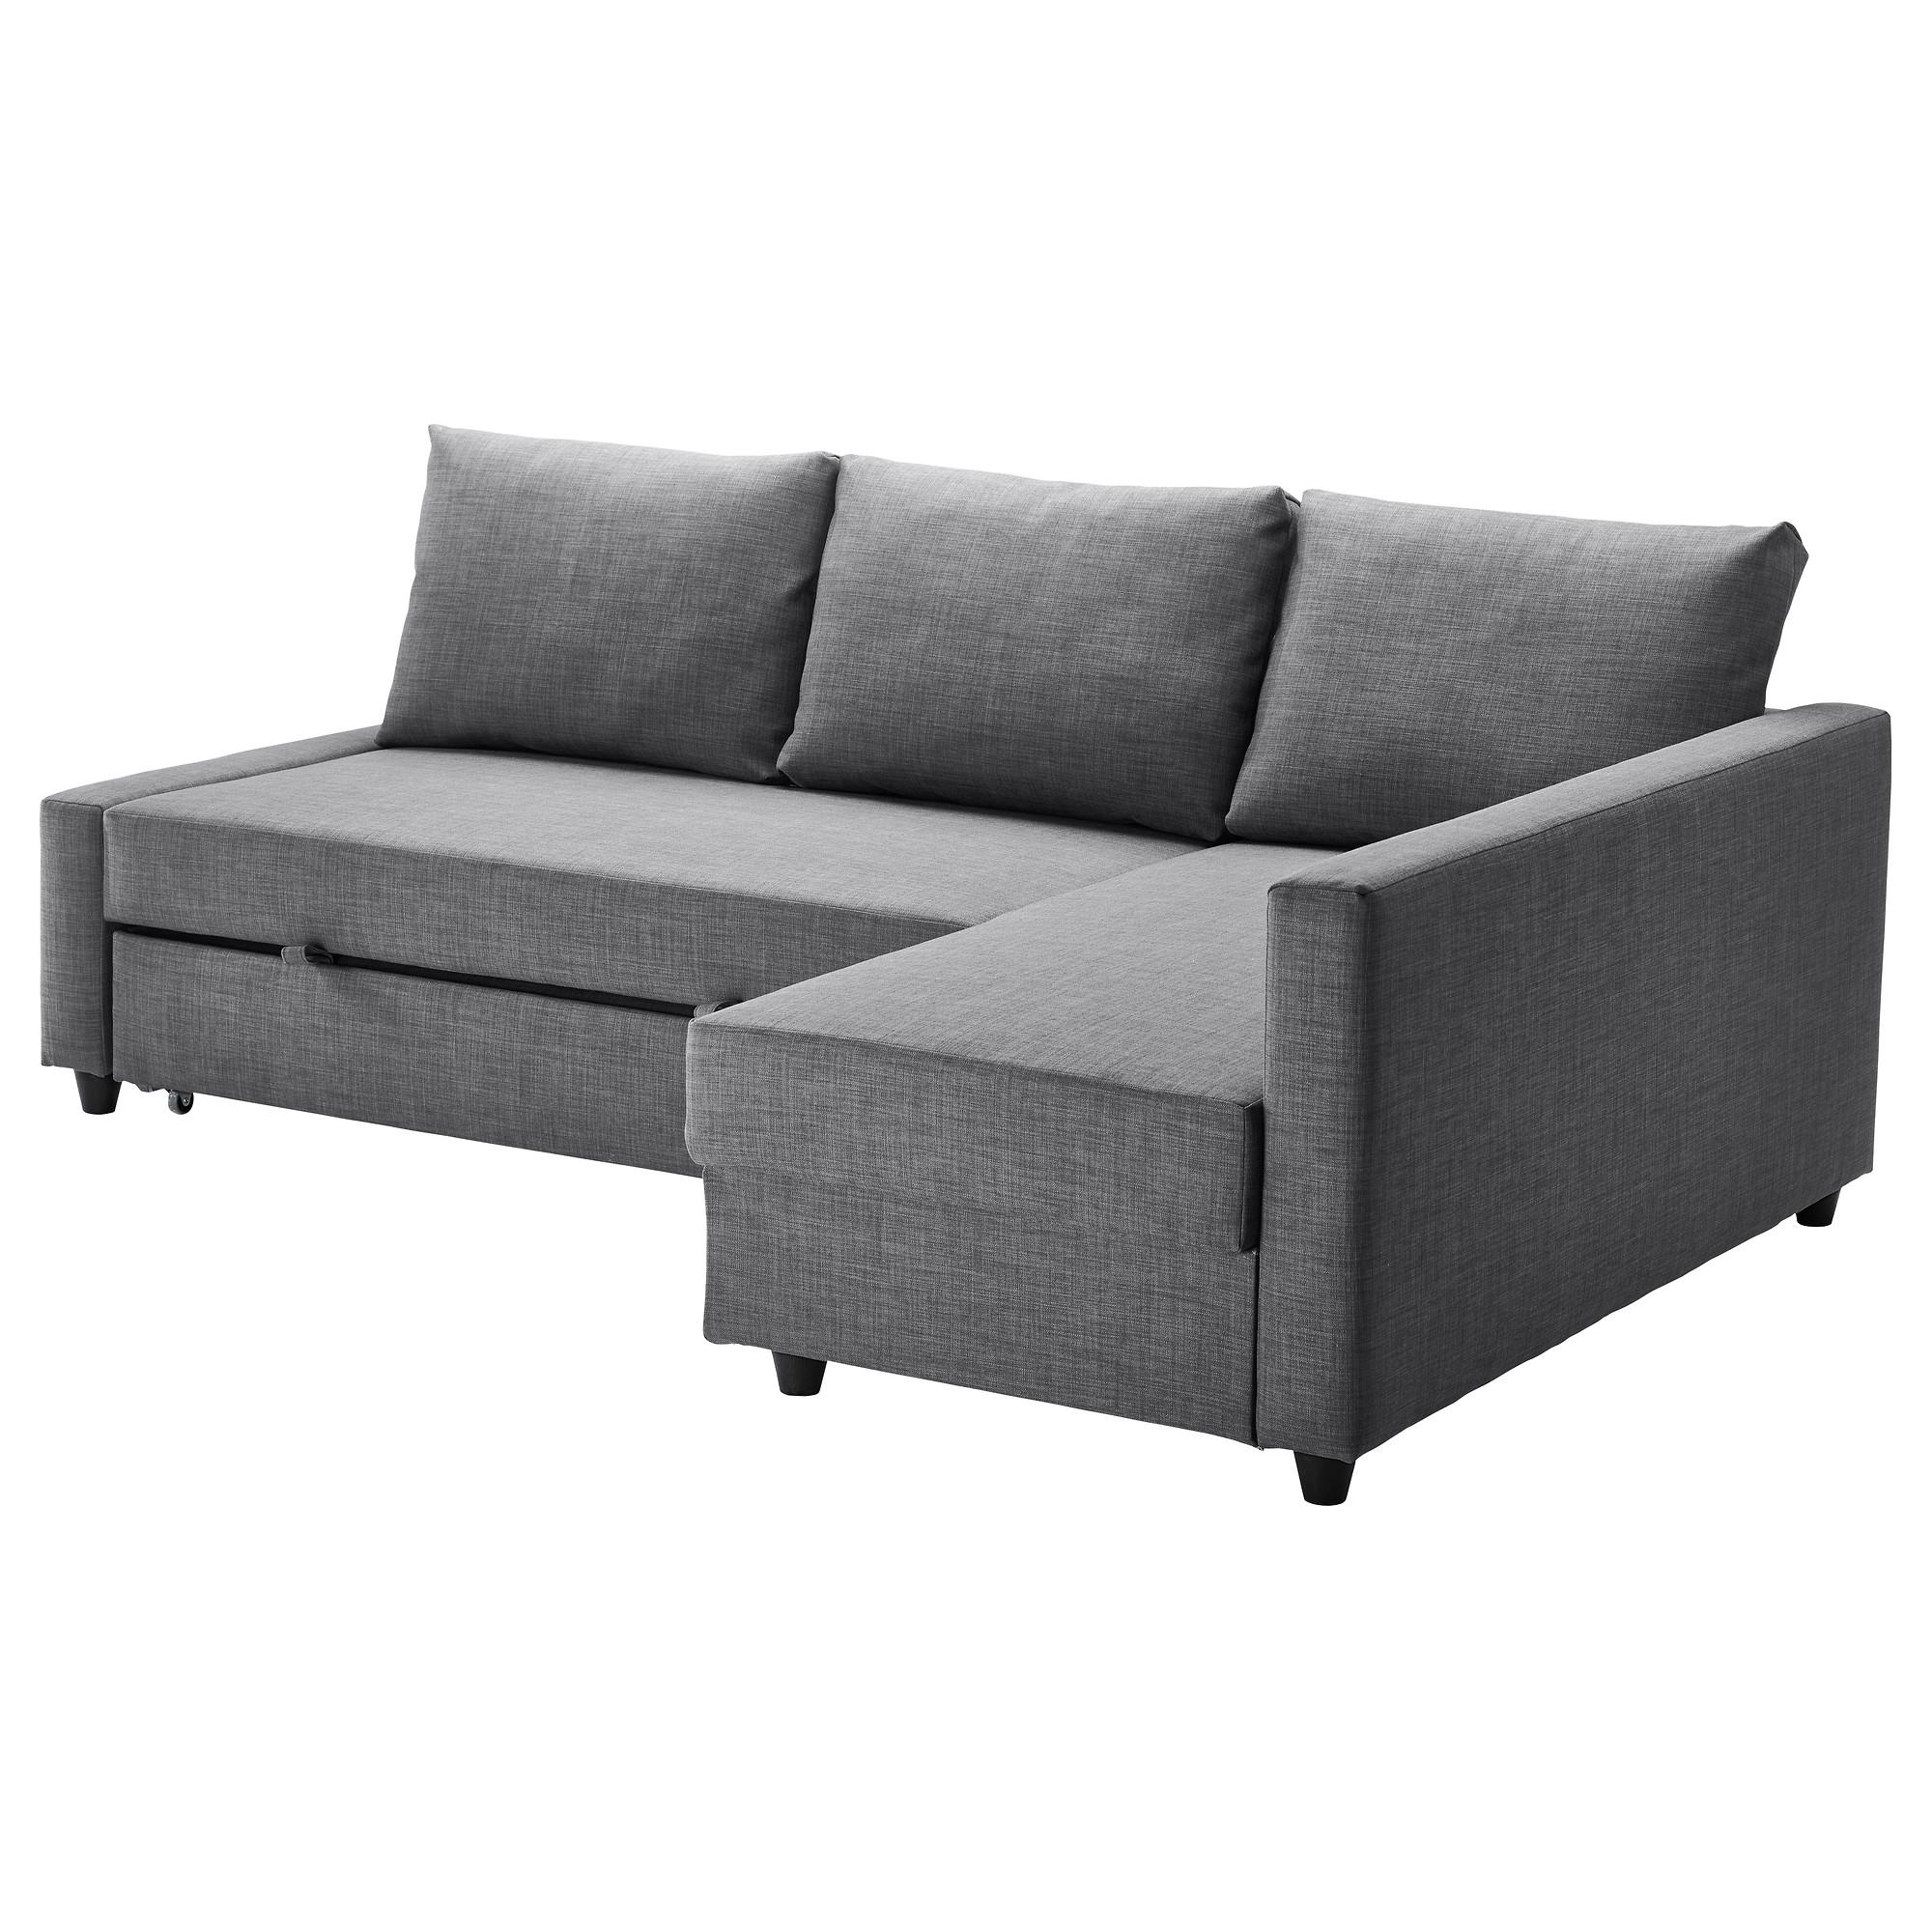 Featured Image of Storage Sofas Ikea